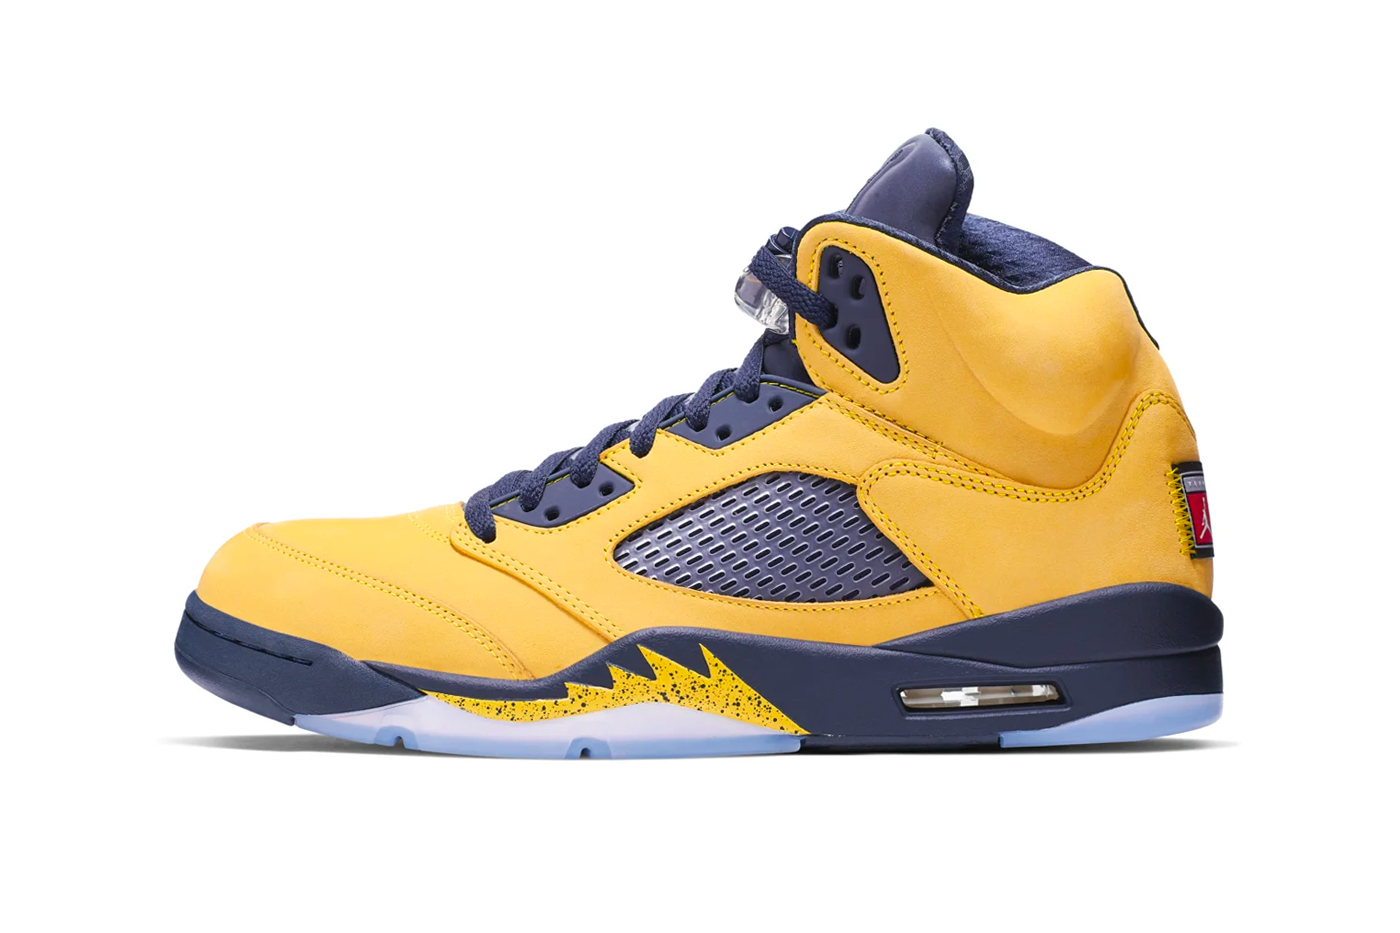 quality design d92a4 e1ee6 Air Jordan 5